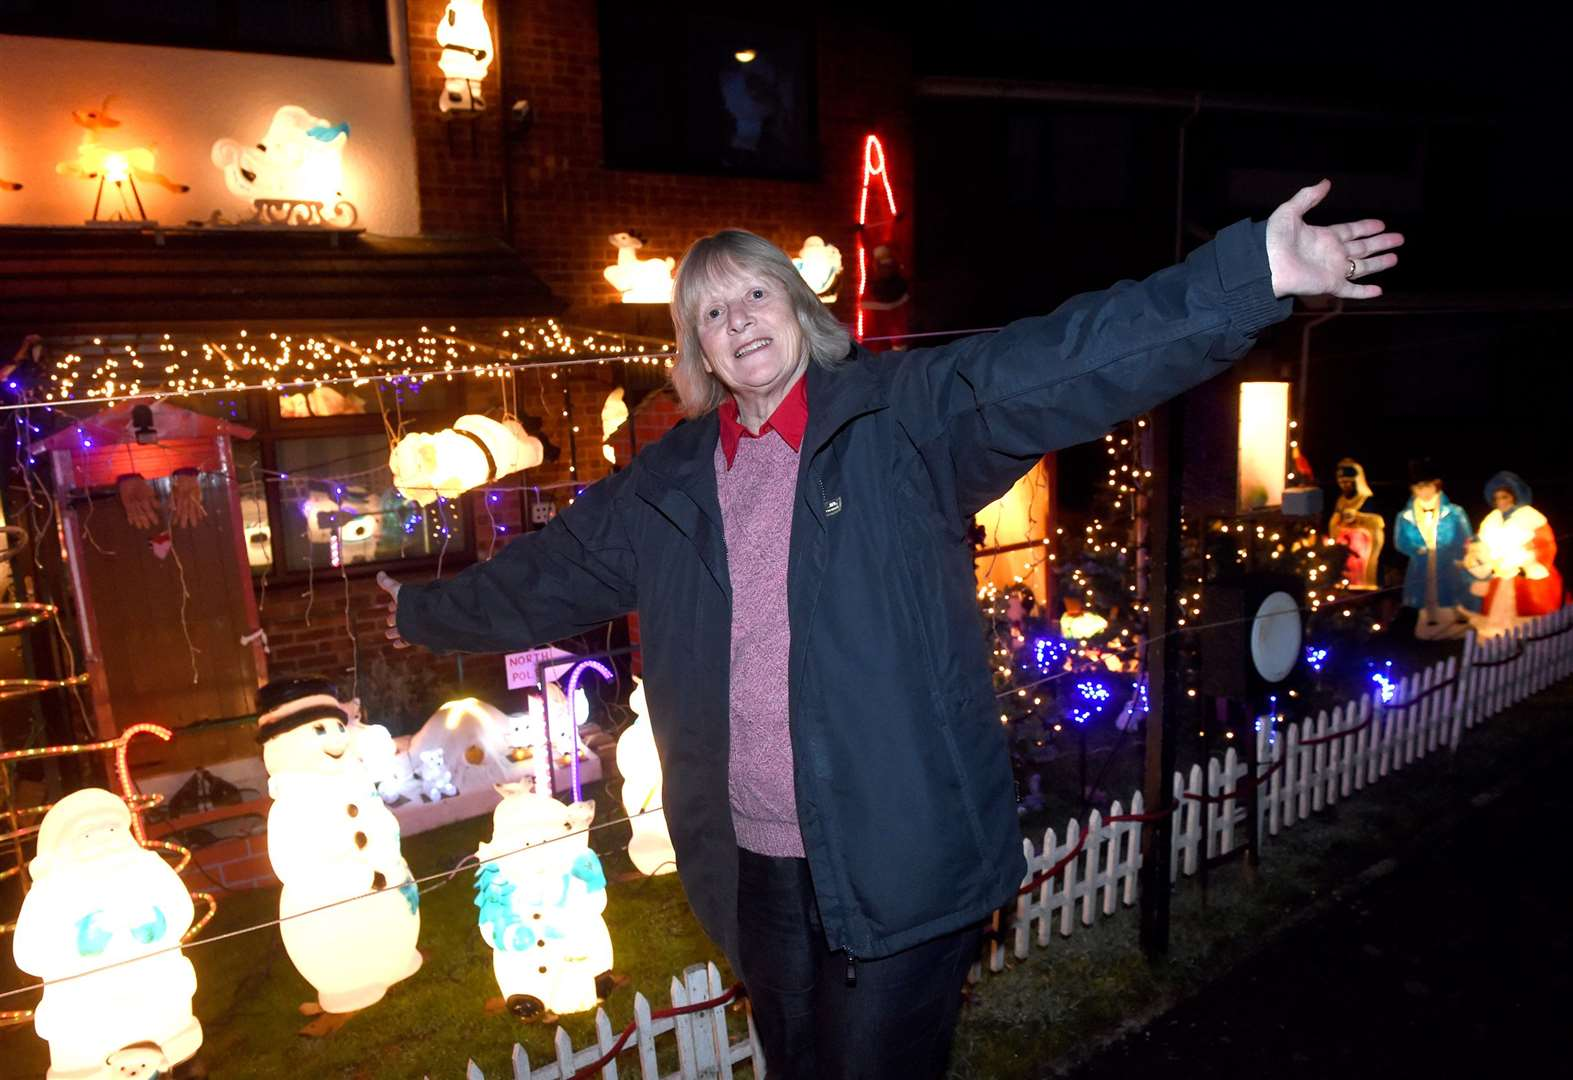 Harleston couple decks house in Christmas lights to raise funds for charity